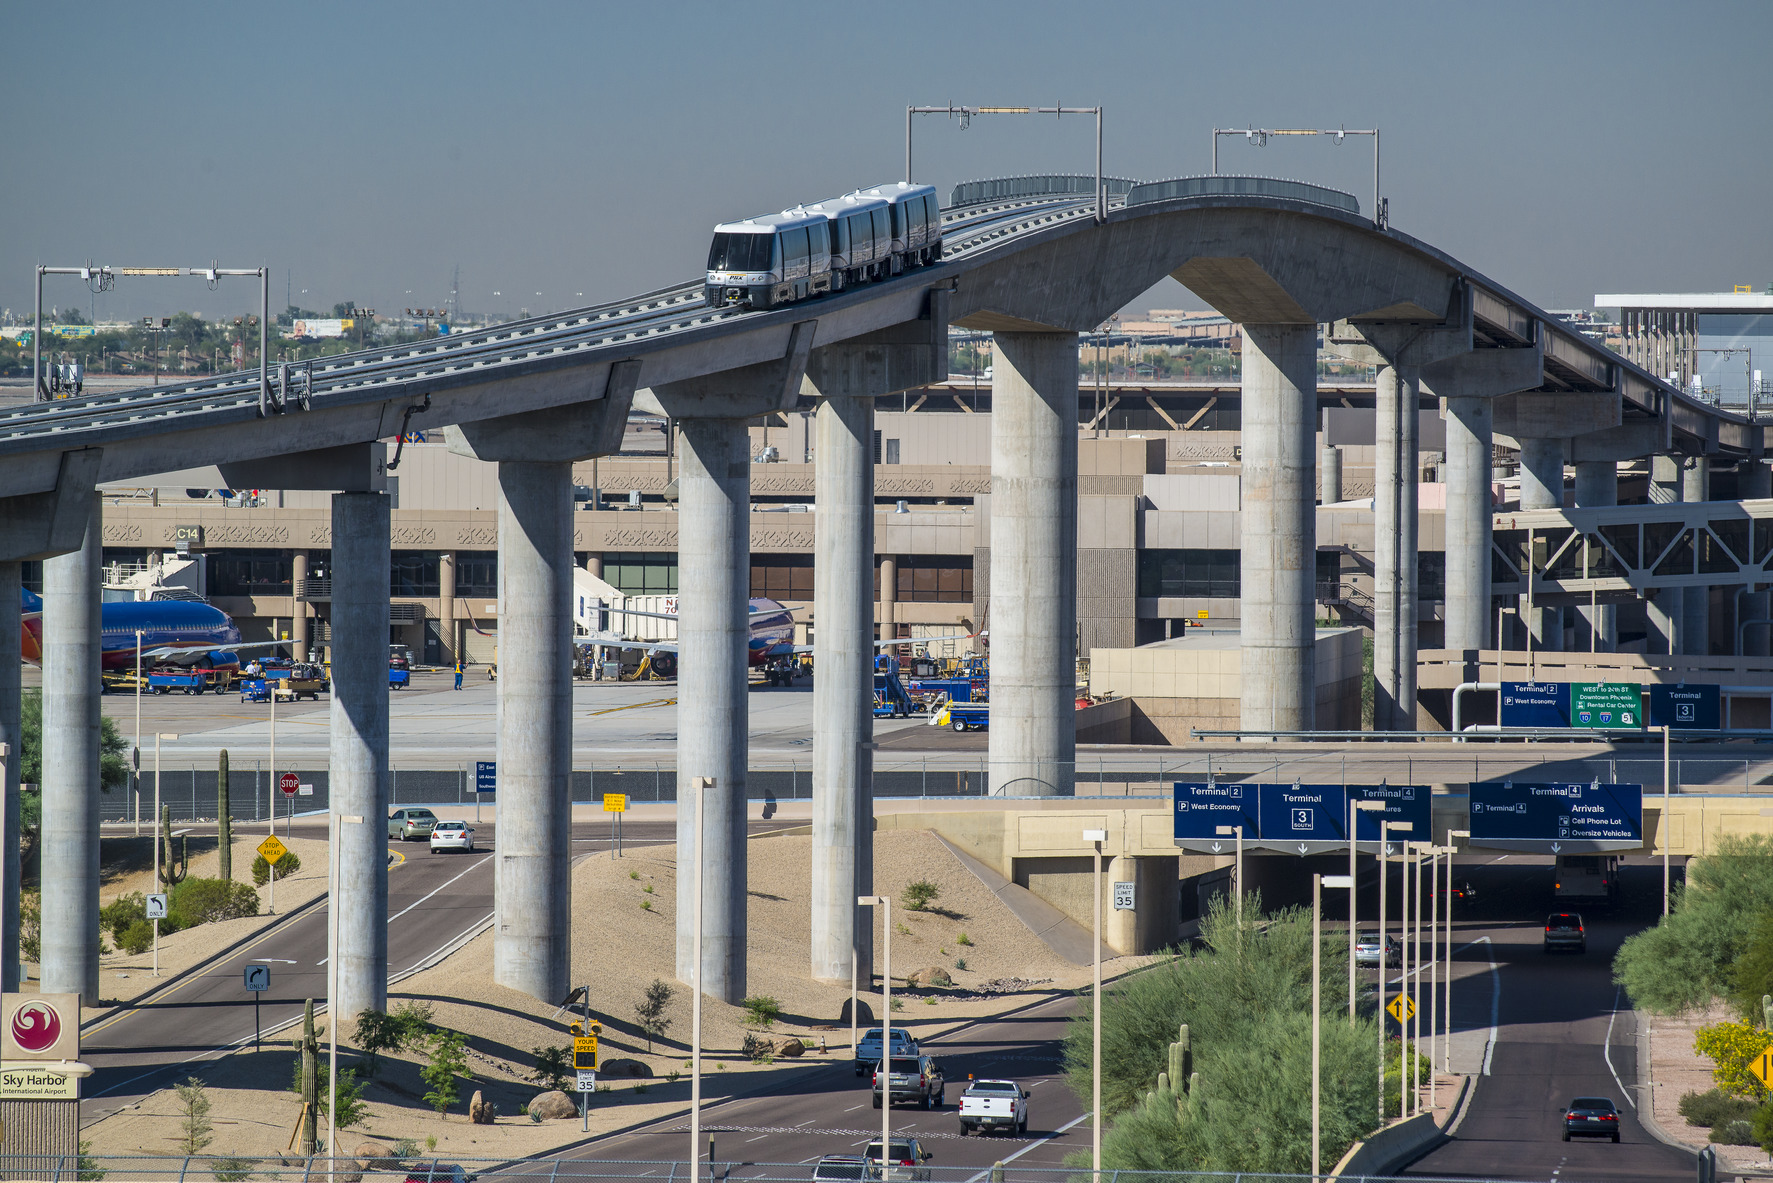 Kimley-Horn provided planning, design & construction support services for the Sky Train people mover at Phoenix Sky Harbor International Airport.